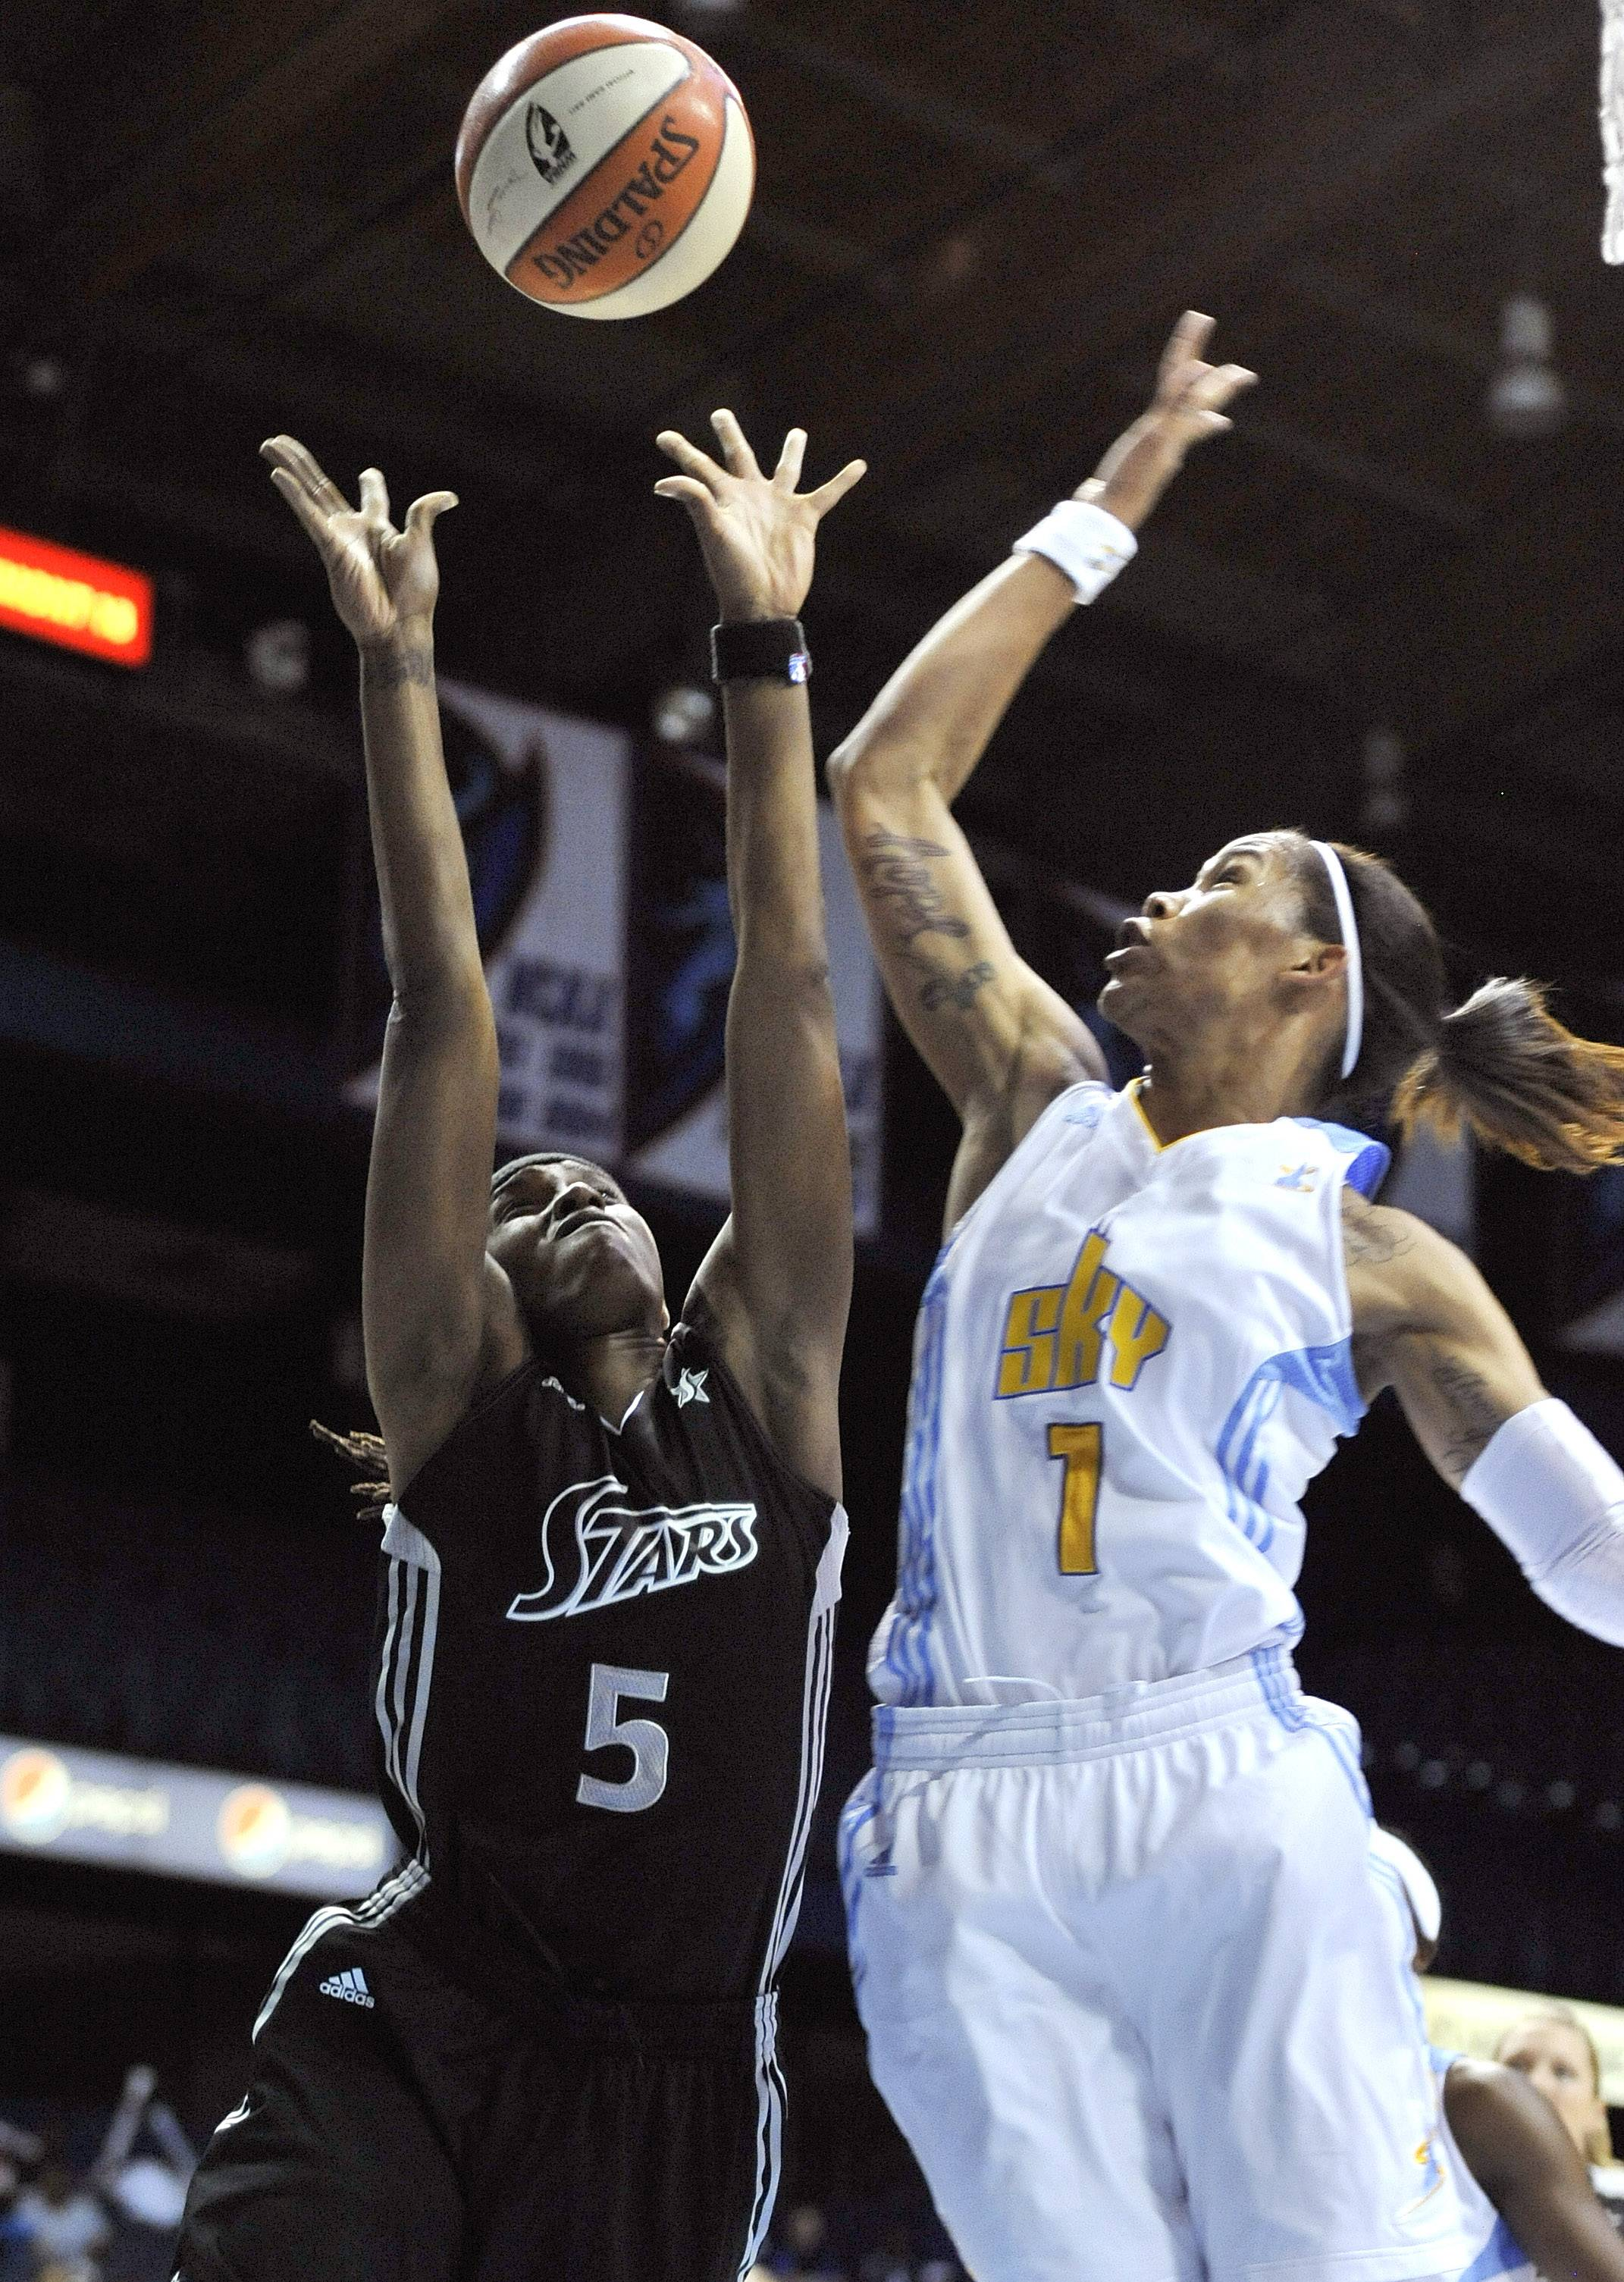 Tamera Young fouls San Antonio Silver Stars guard Roneeka Hodges as she goes up for a shot during the second quarter Tuesday at Allstate Arena.